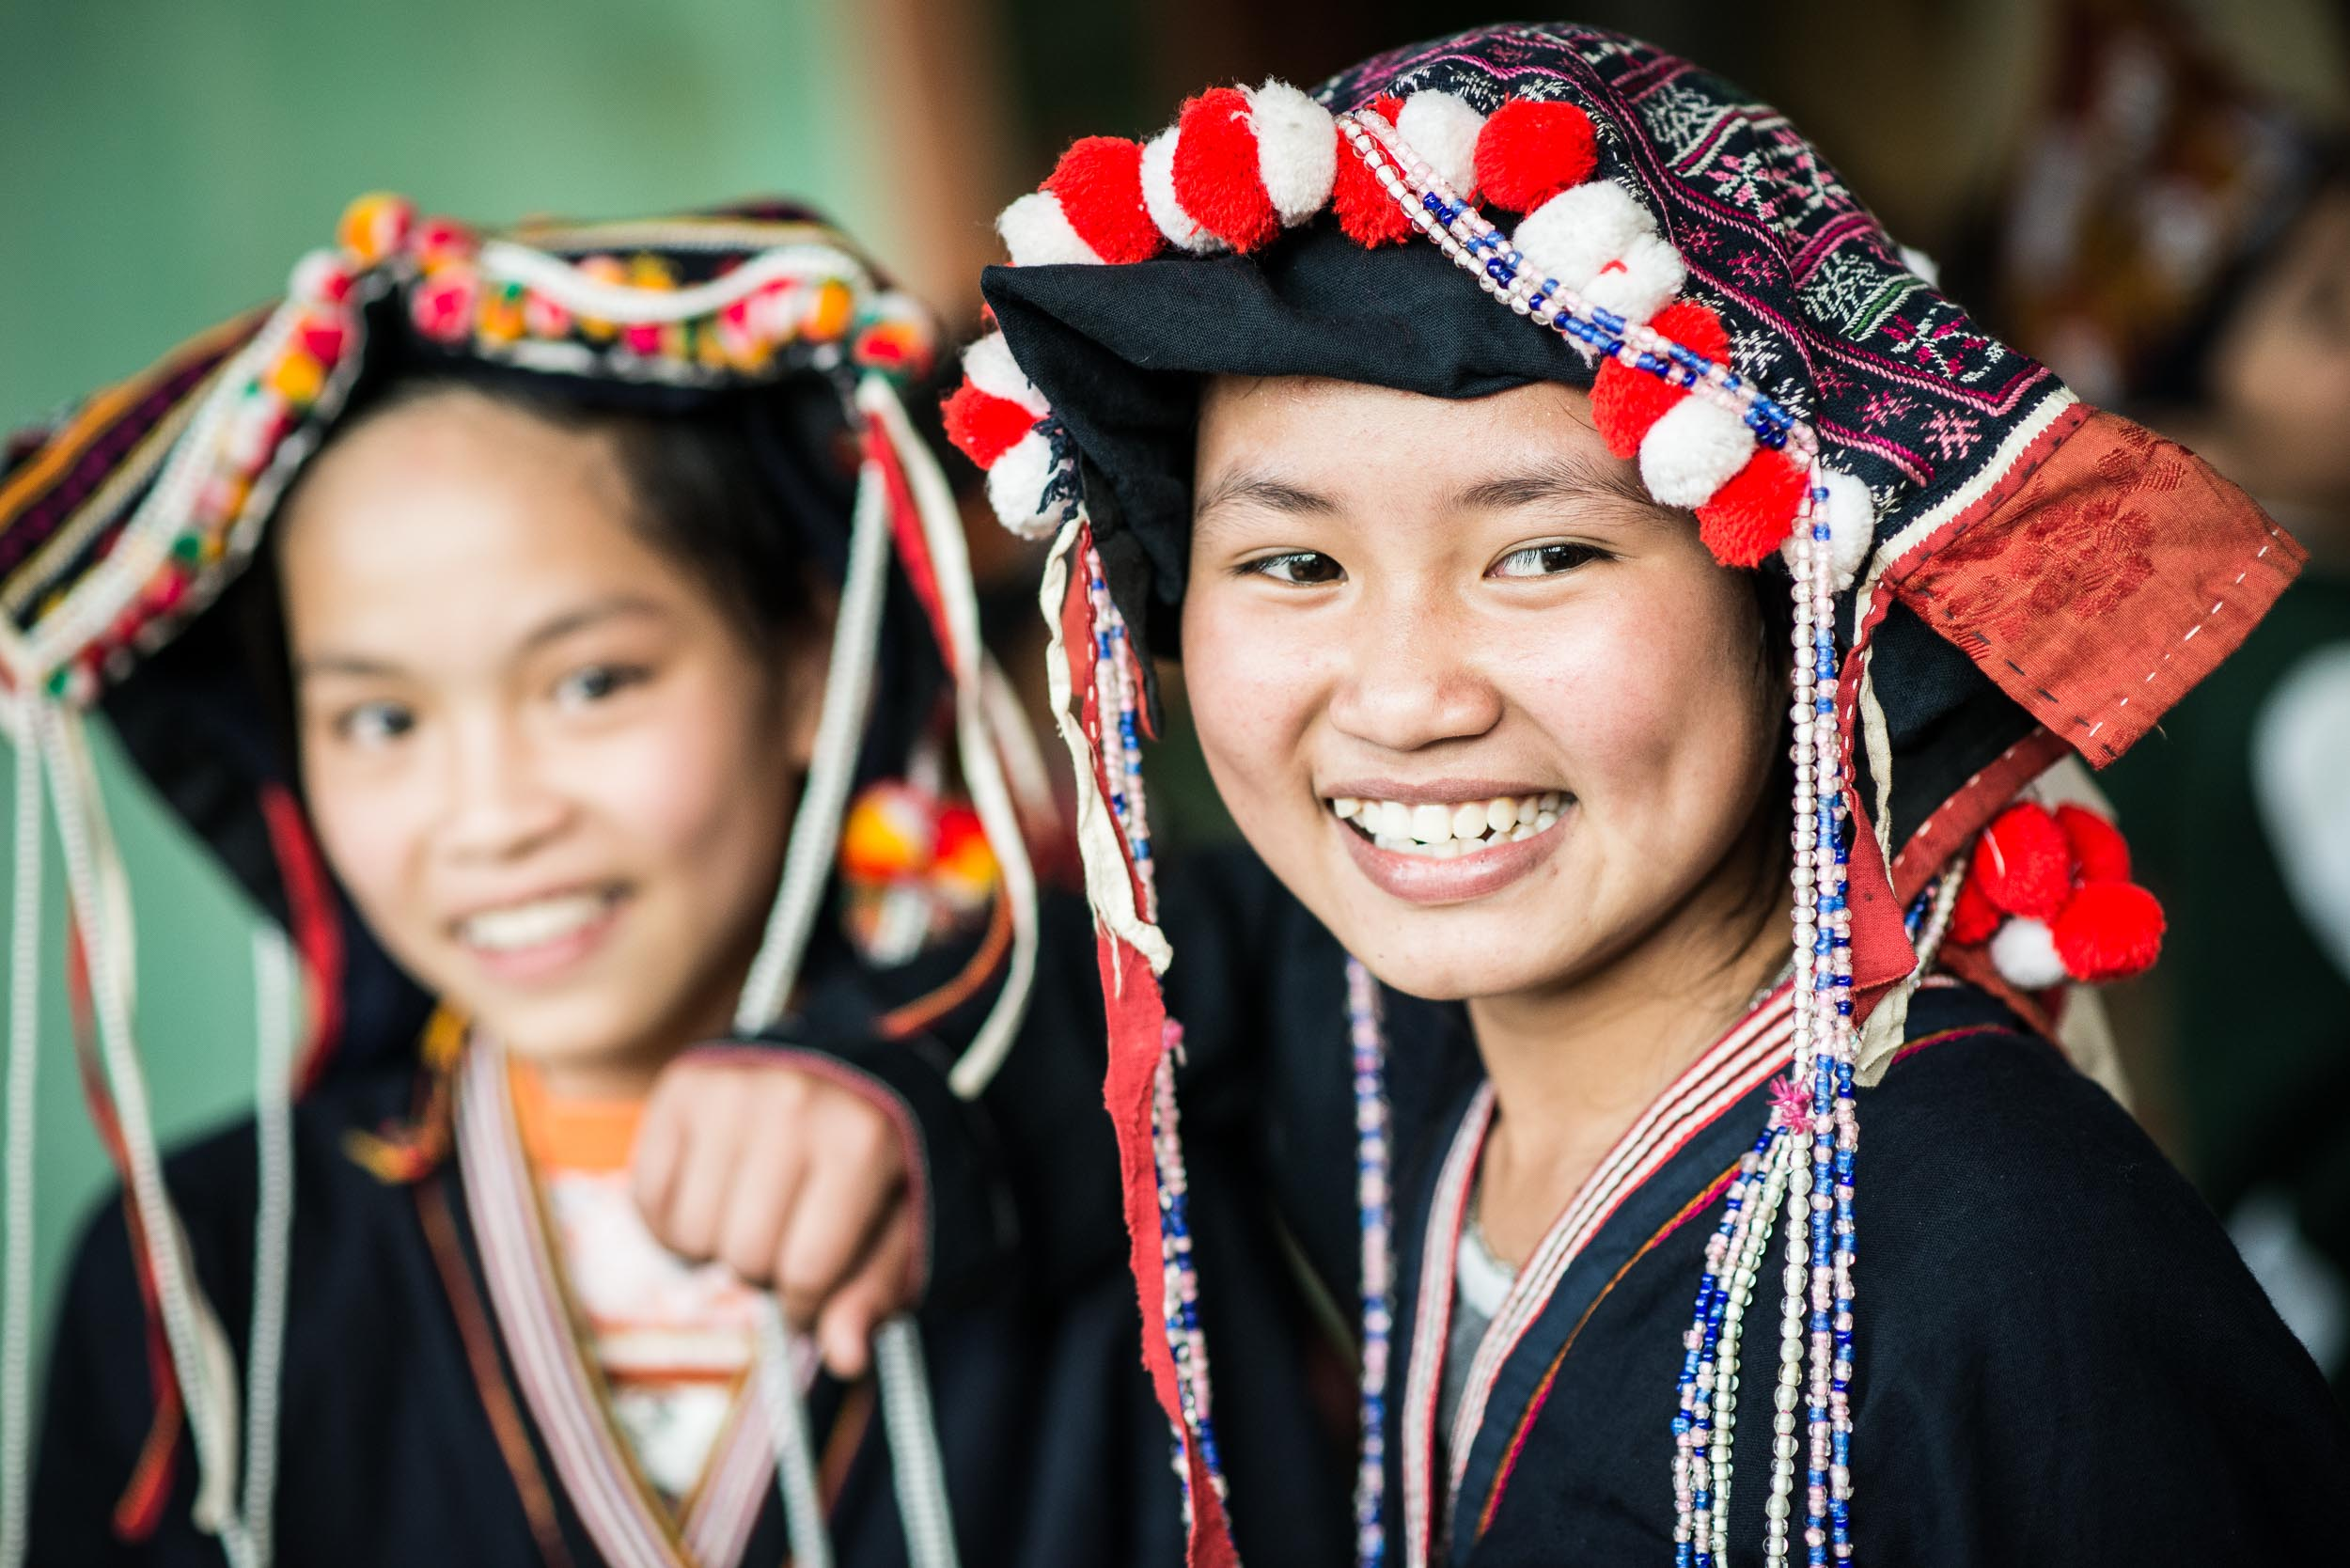 Vietnam Smiling ethnic minority - Travel - Photo credit Nicola Bailey.jpg